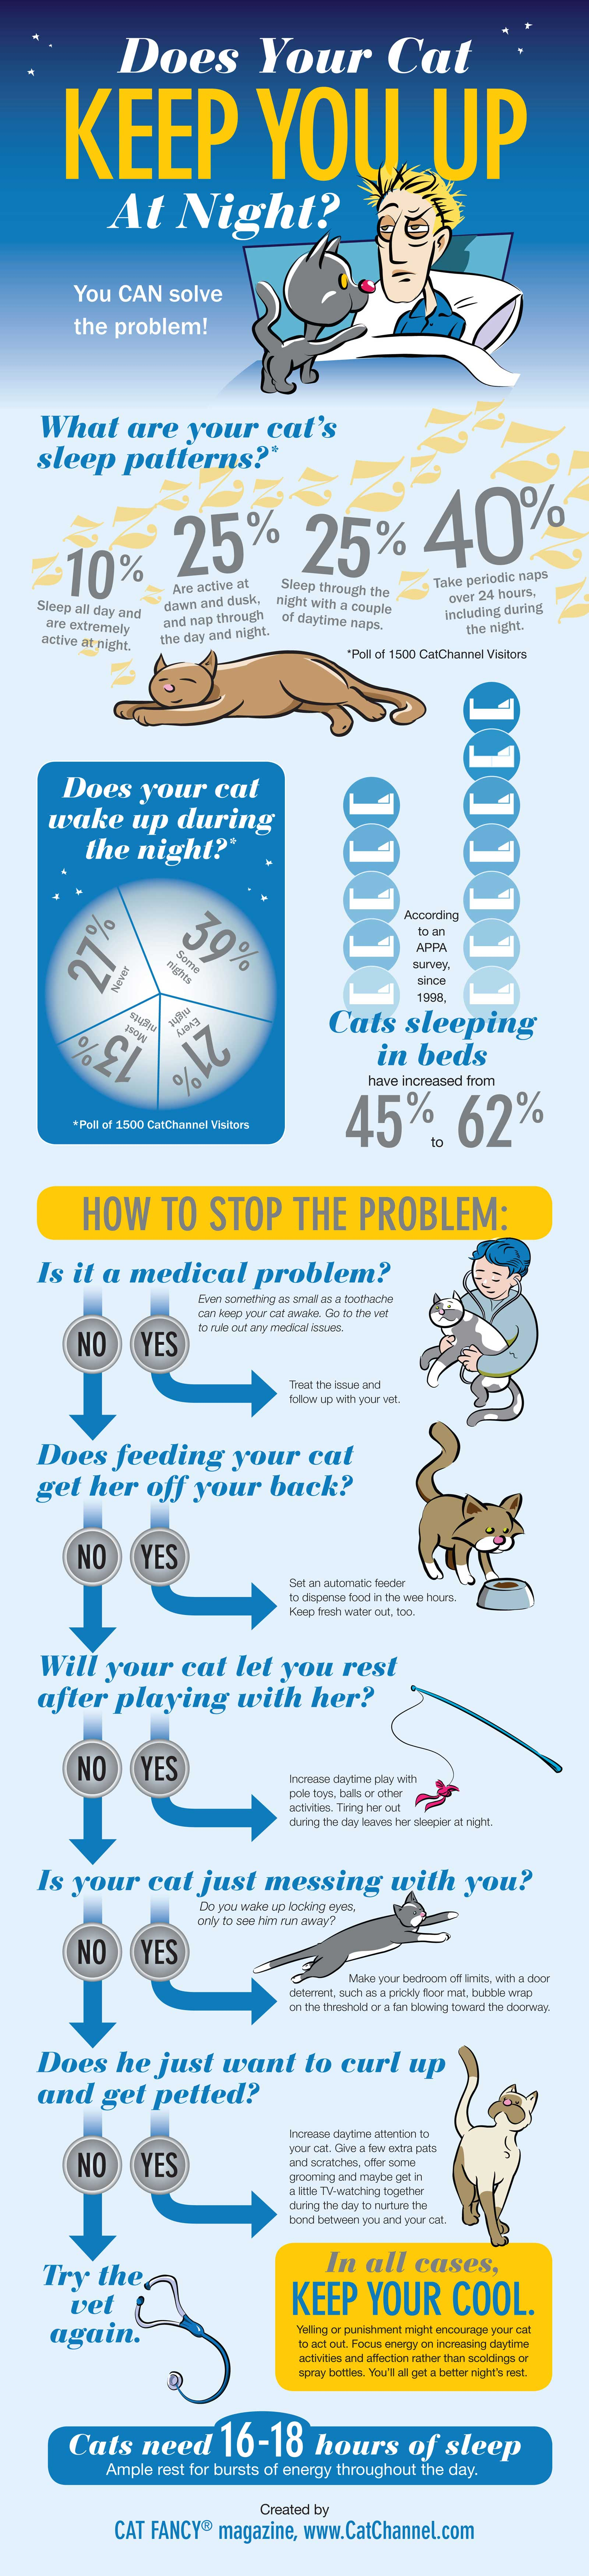 Does your cat keep you up at night